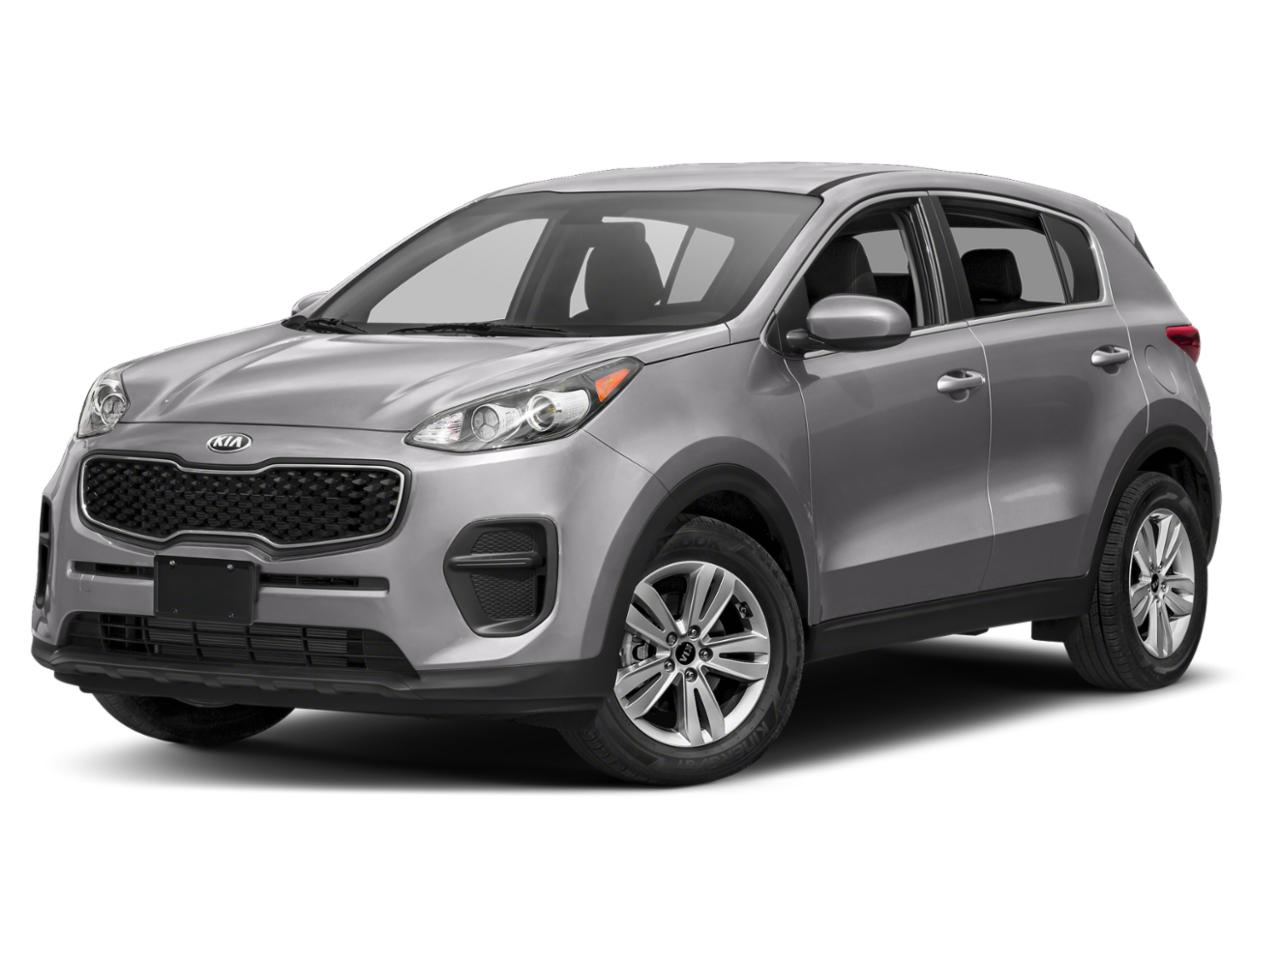 2018 Kia Sportage Vehicle Photo in Concord, NC 28027